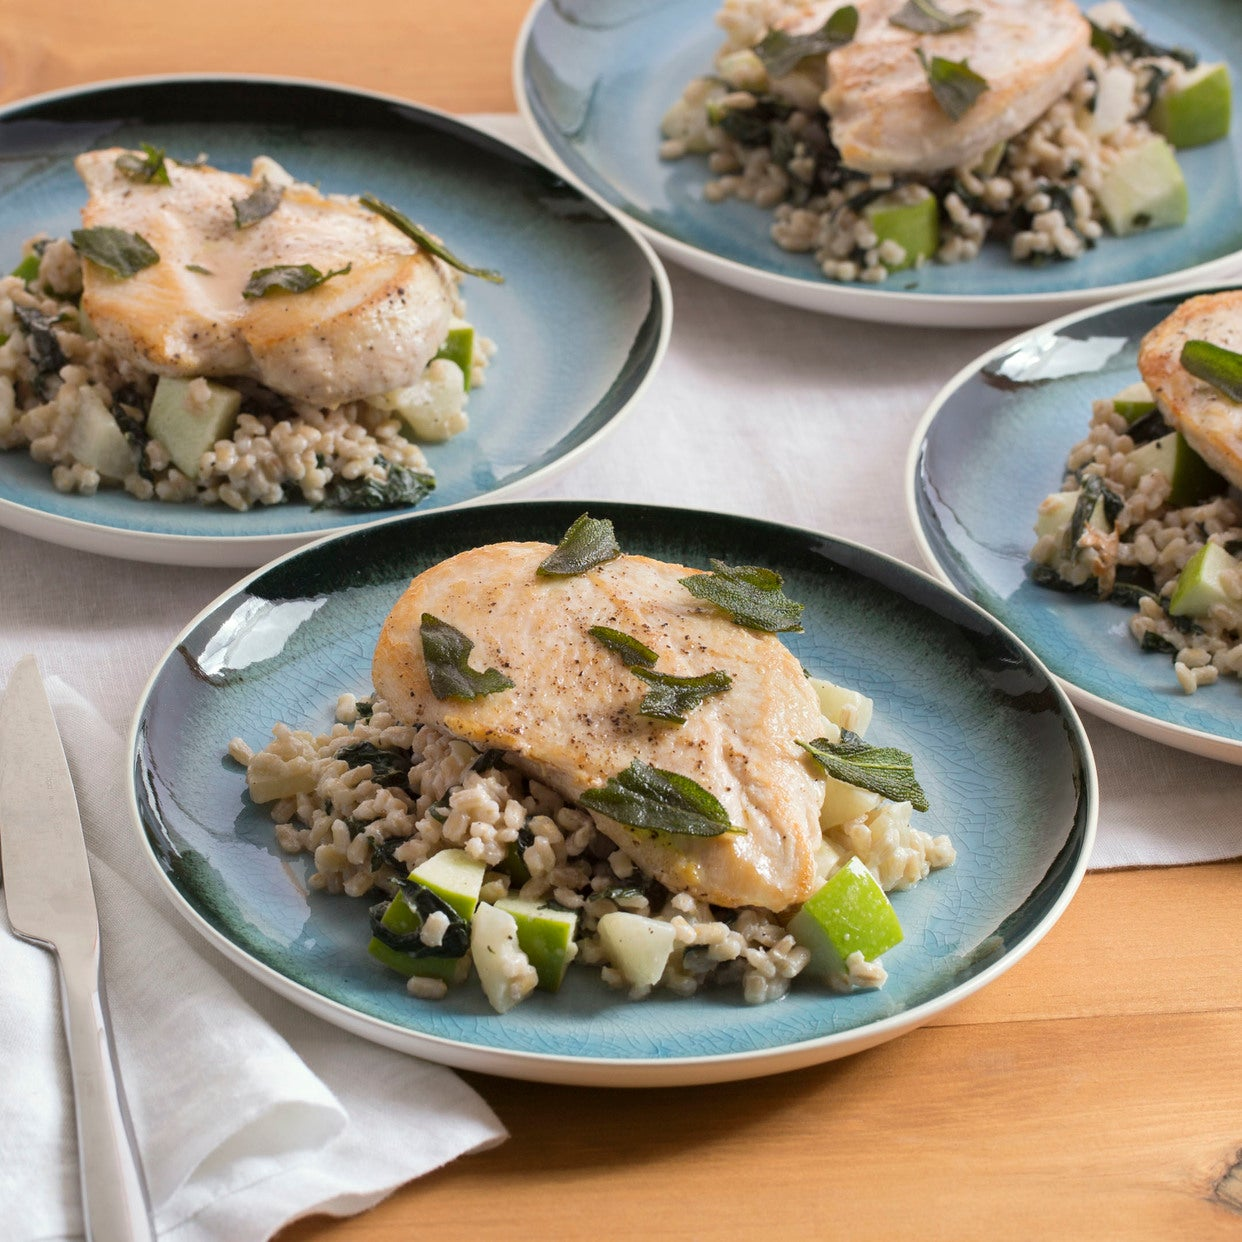 Seared Chicken with Turnip, Apple & Barley Salad